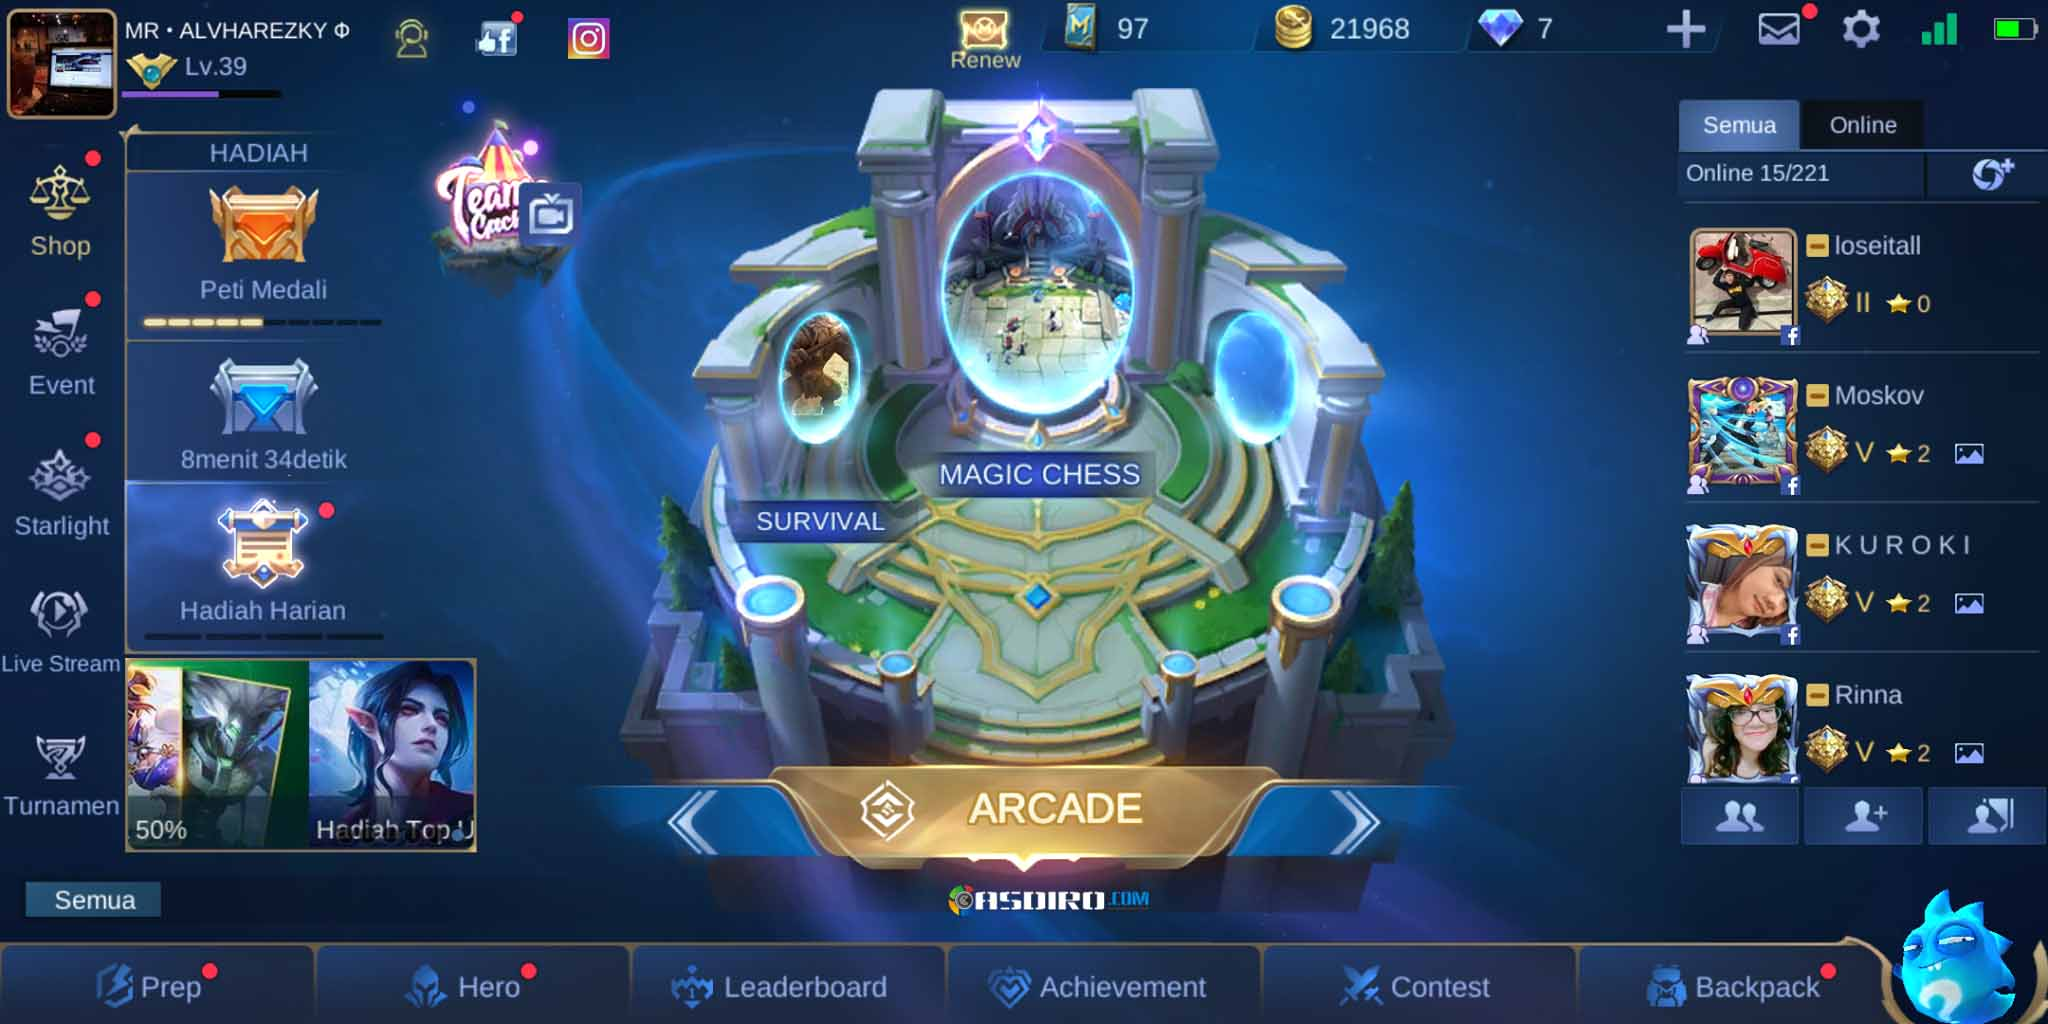 Mode Arcade di Mobile Legends Mod Apk